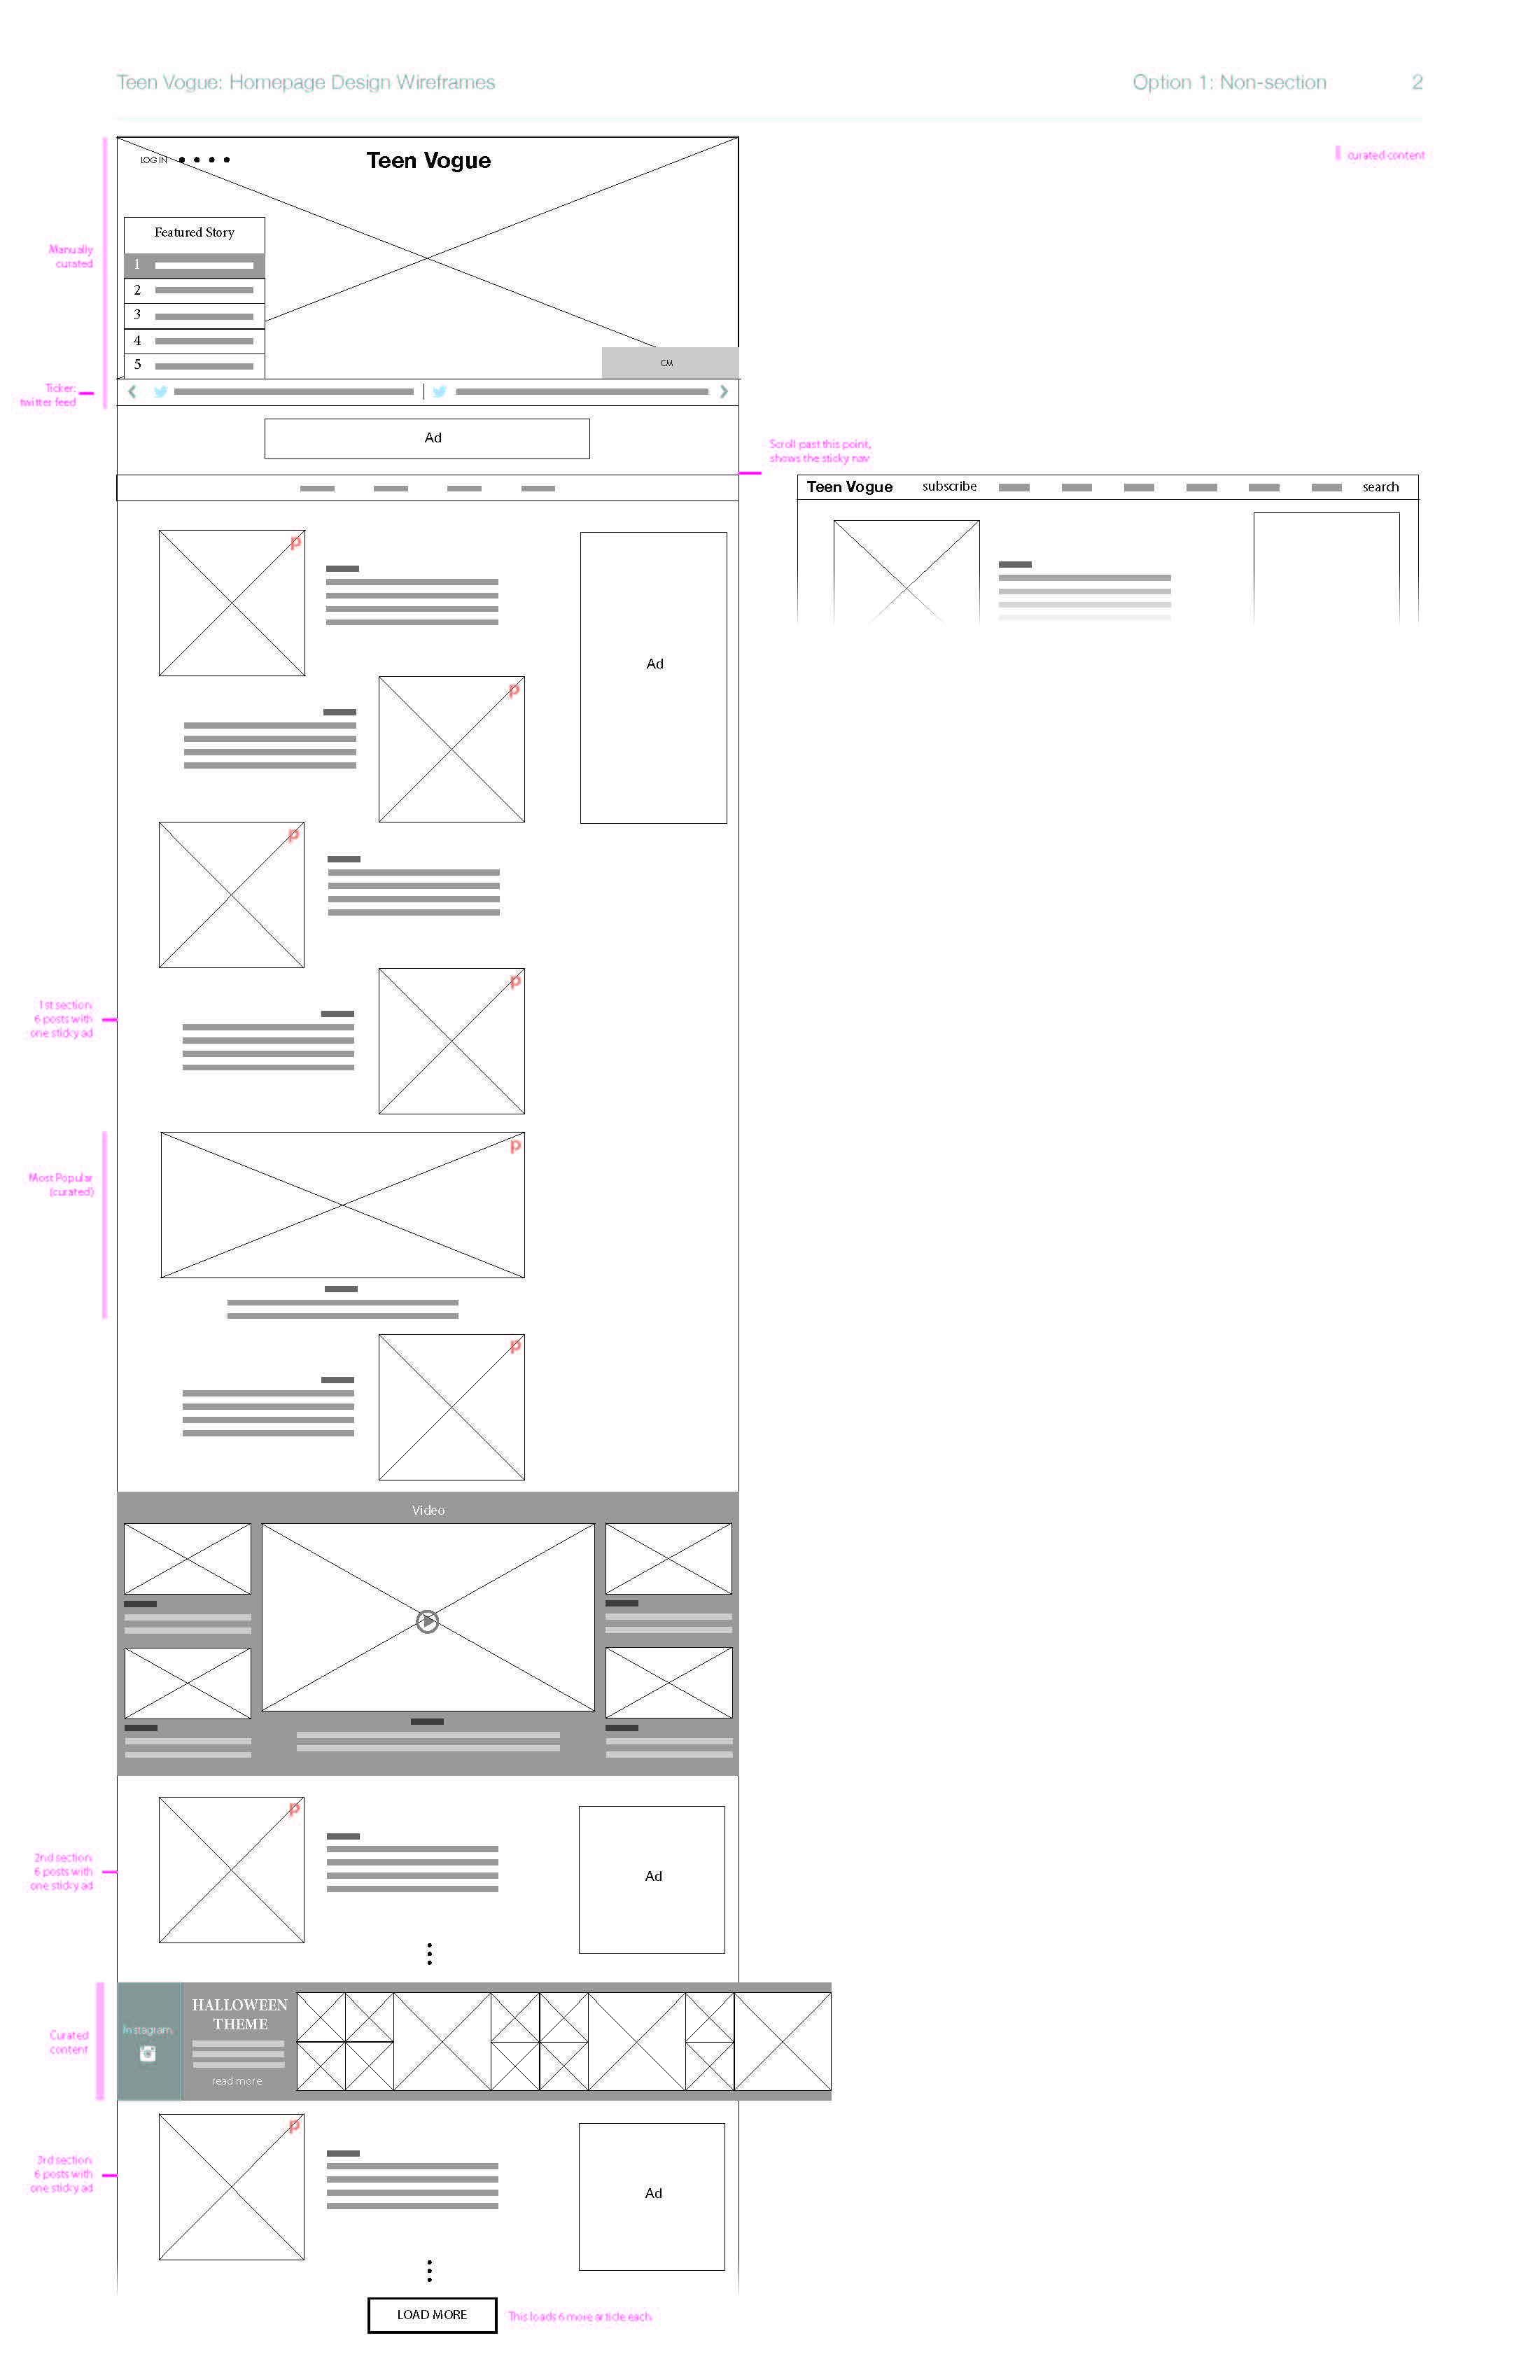 TV_Homepage_Wireframes_110314_Page_2.jpg